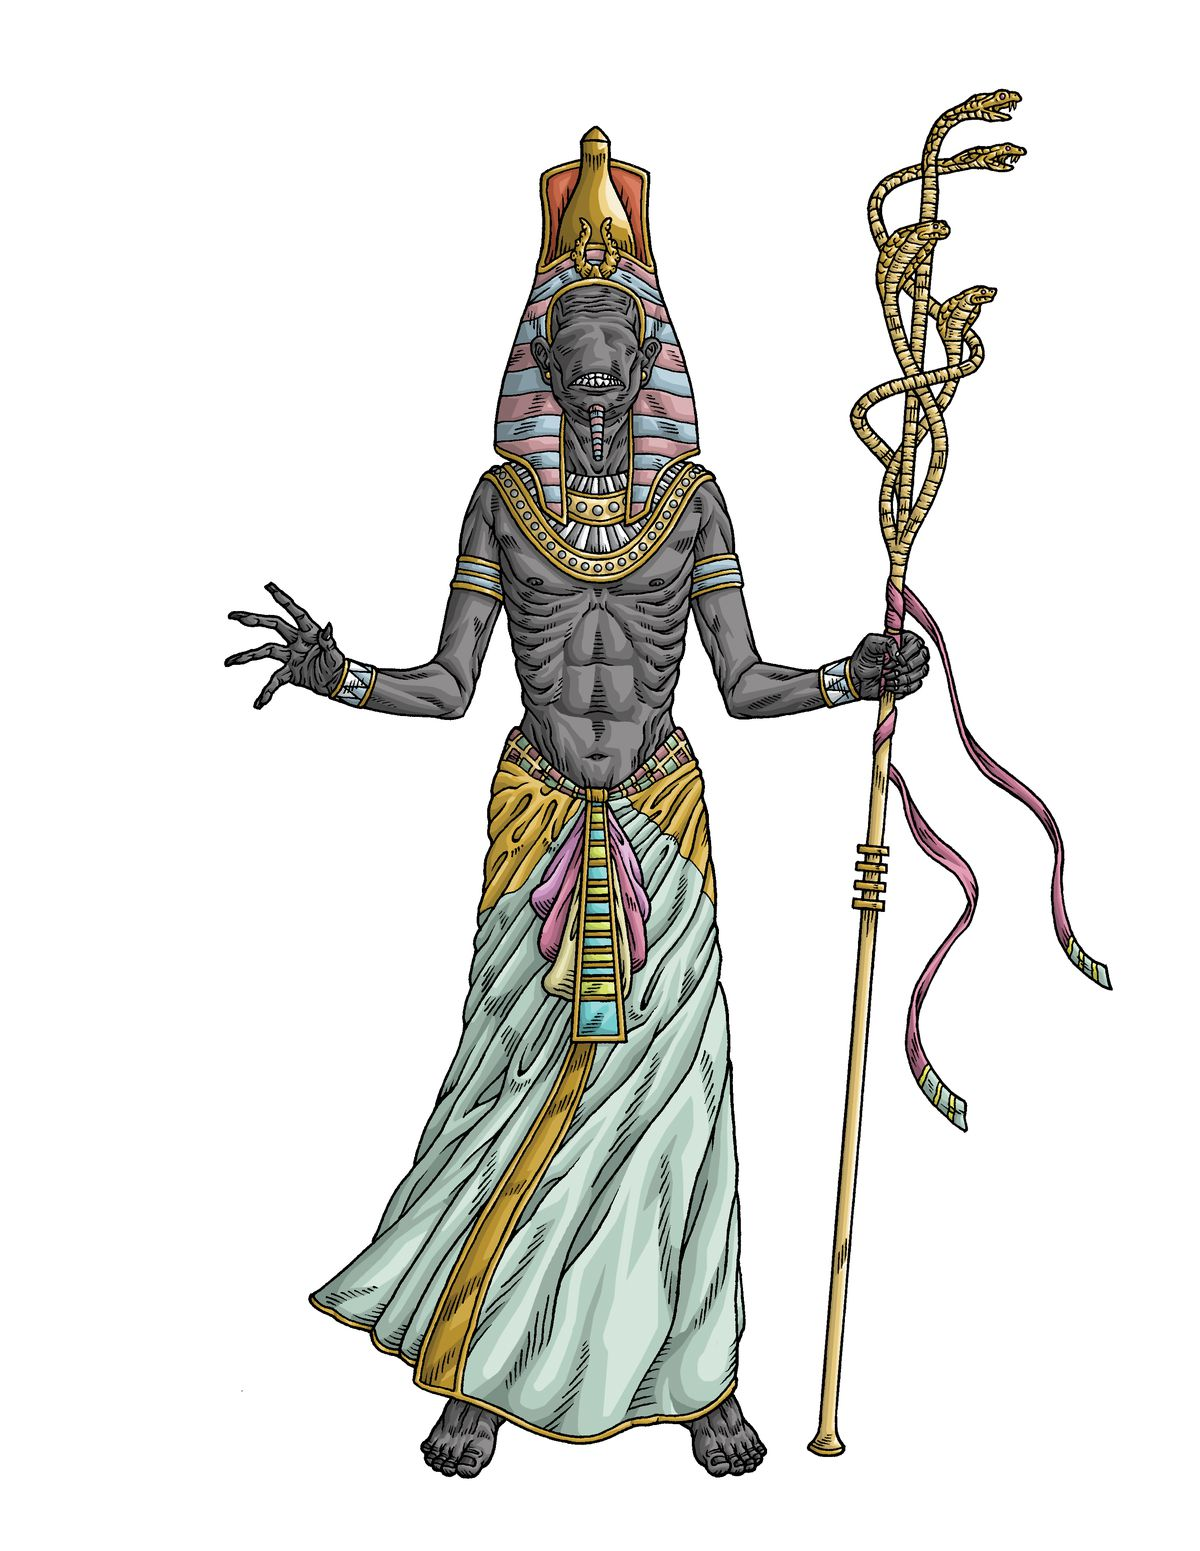 HP Lovecraft's Nyarlathotep